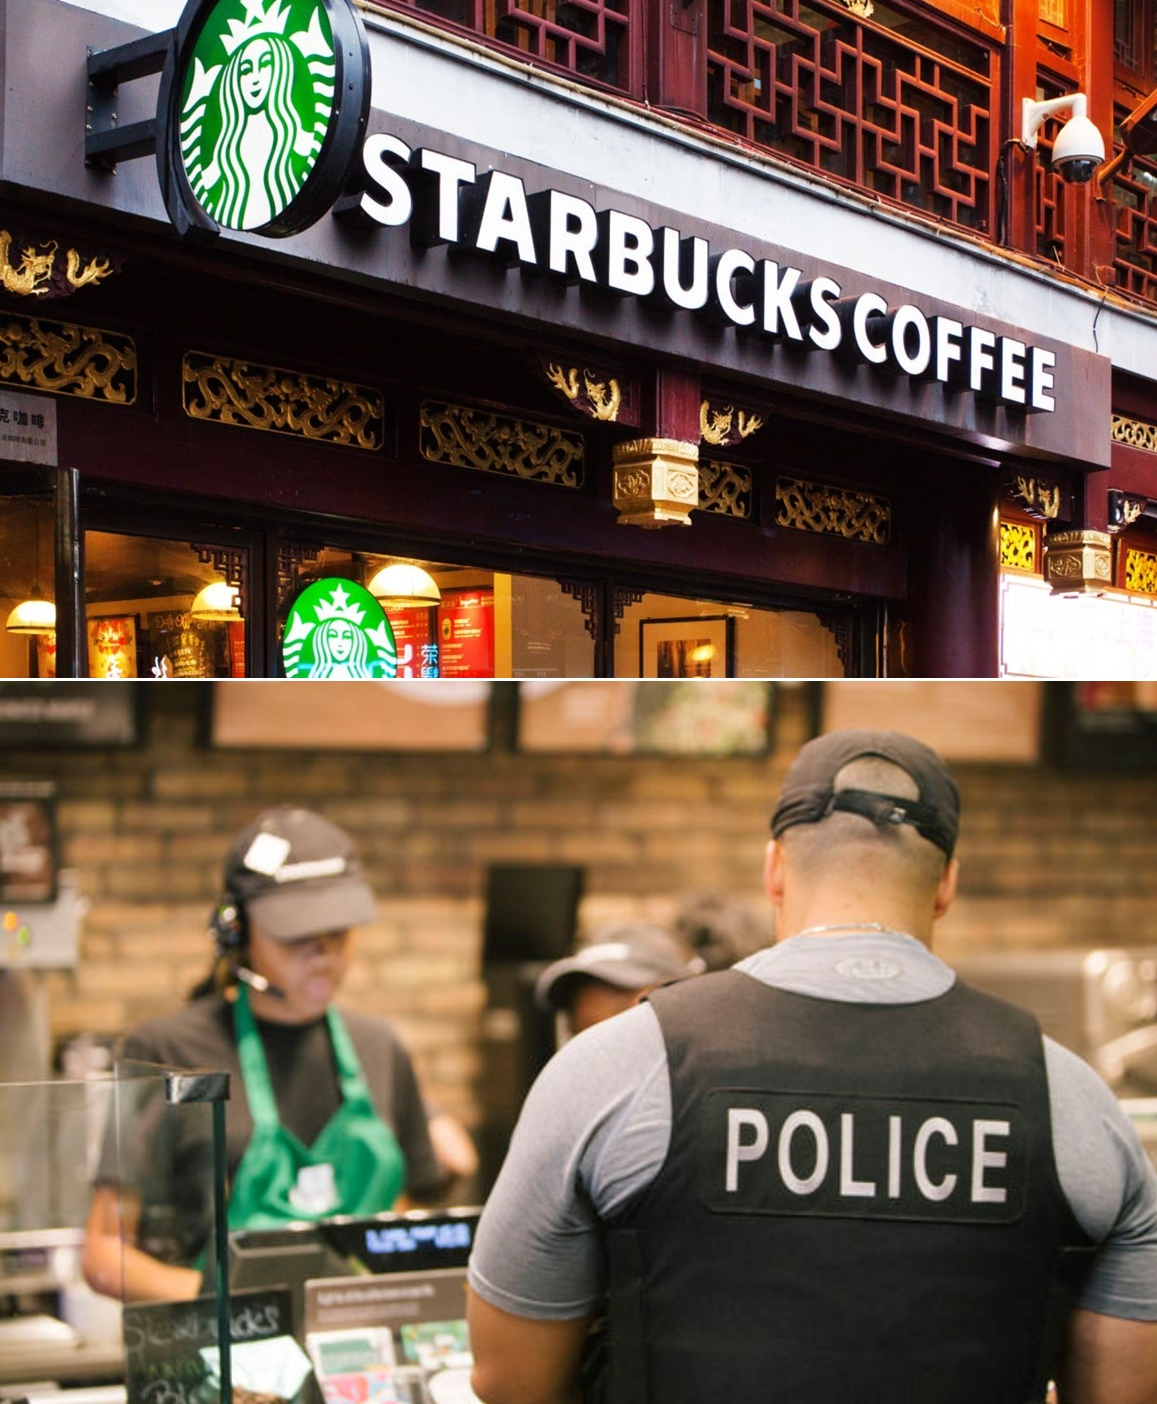 Starbucks barista asks 6 Arizona police officers to leave because customer 'did not feel safe'